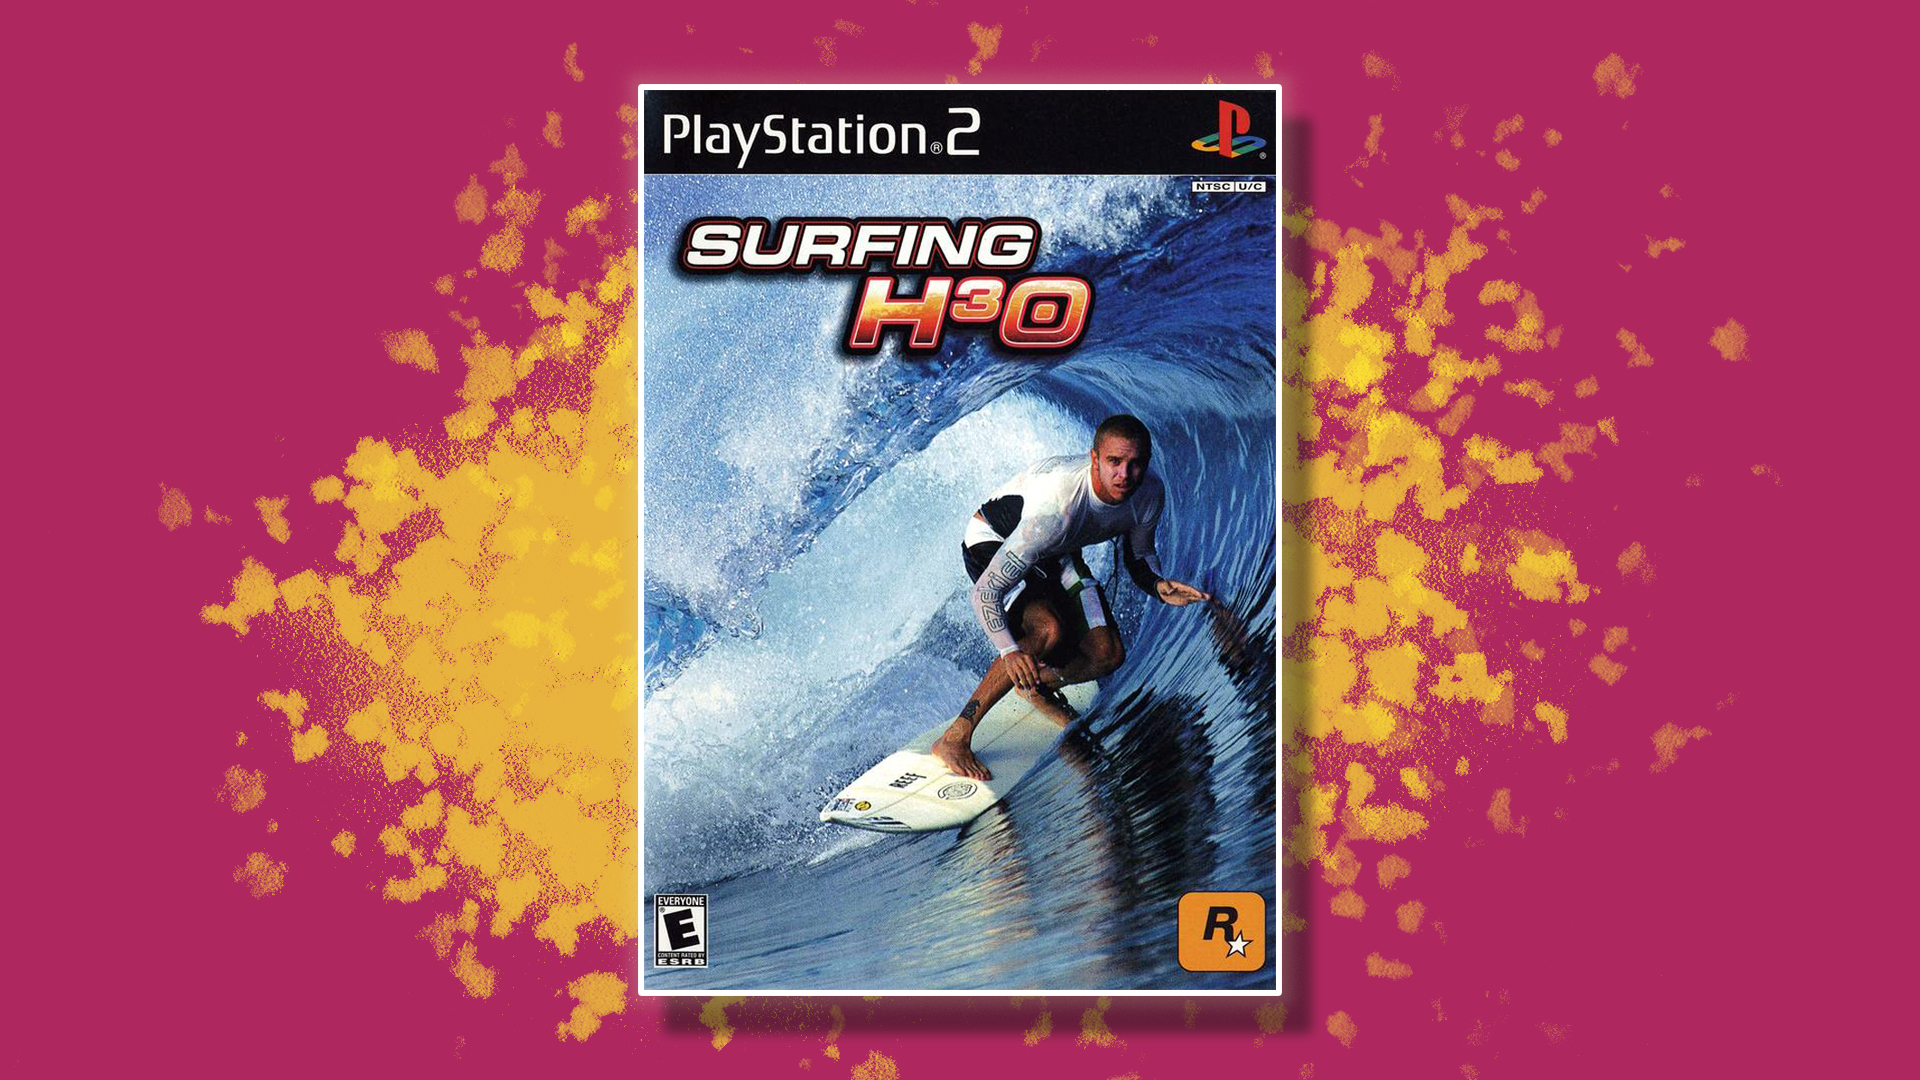 Released 19 Years Ago, Surfing H30 Is Rockstar's Worst Game